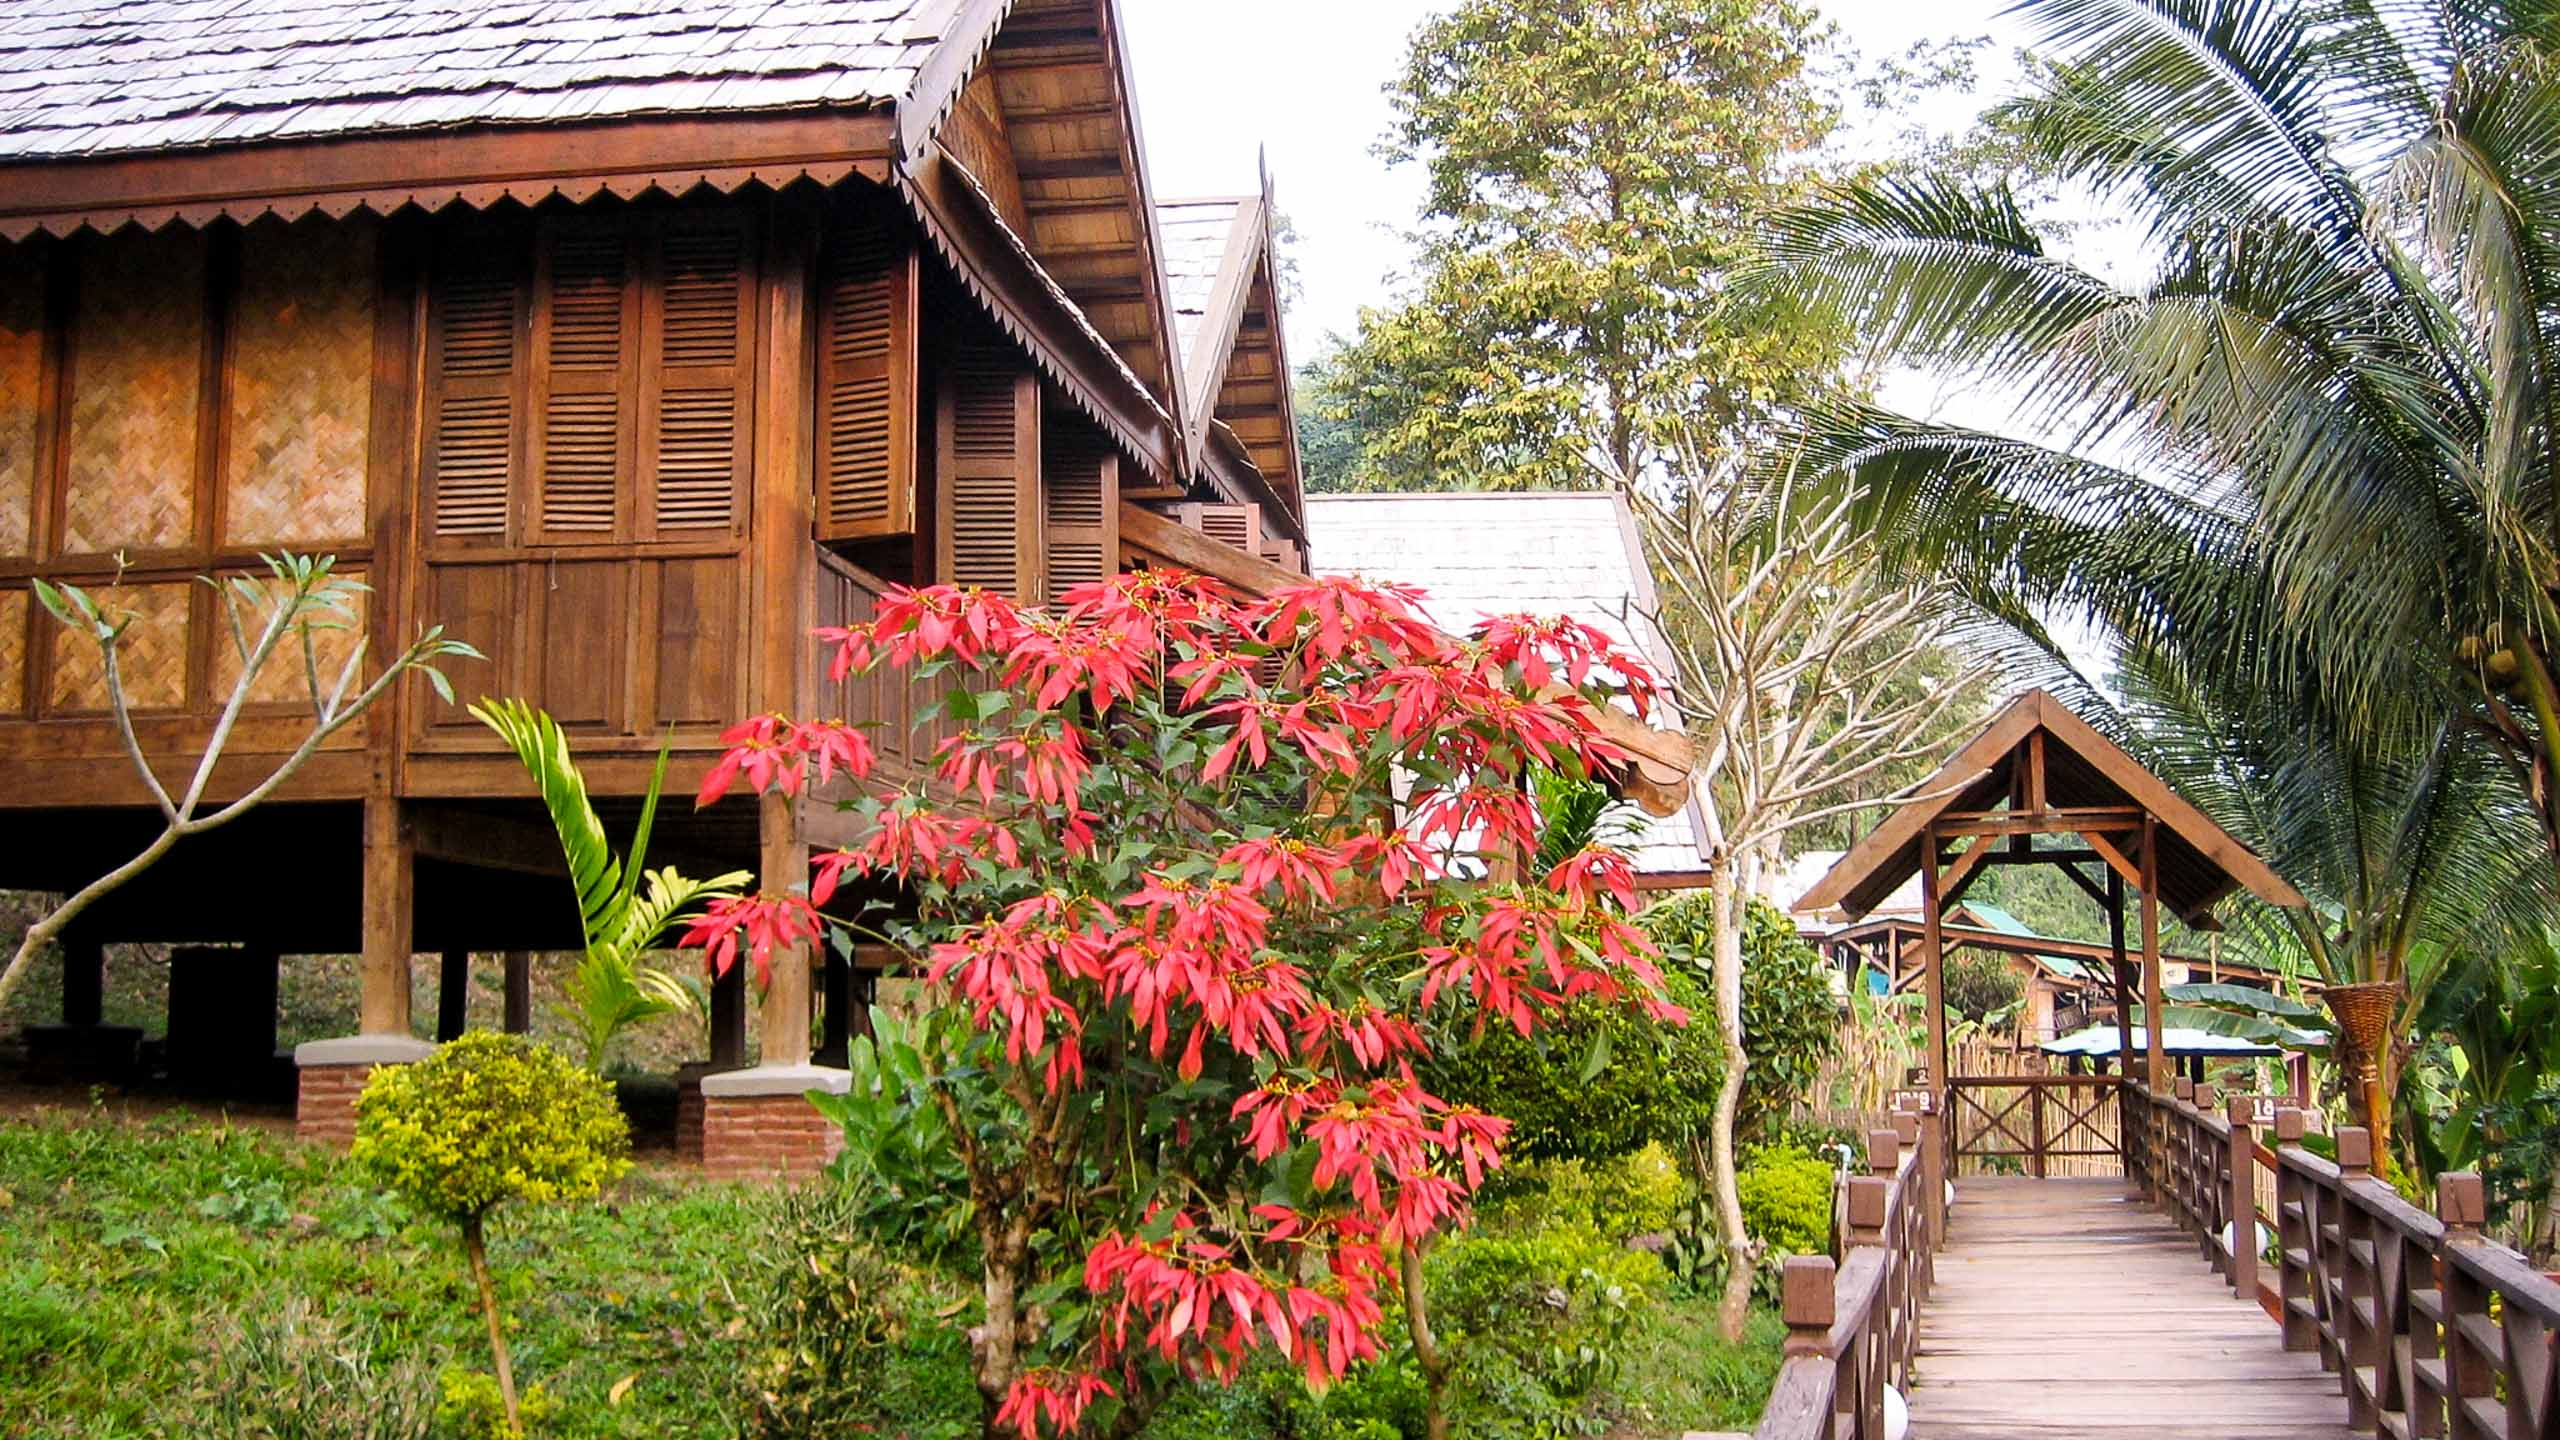 Flowers outside Laos cabins